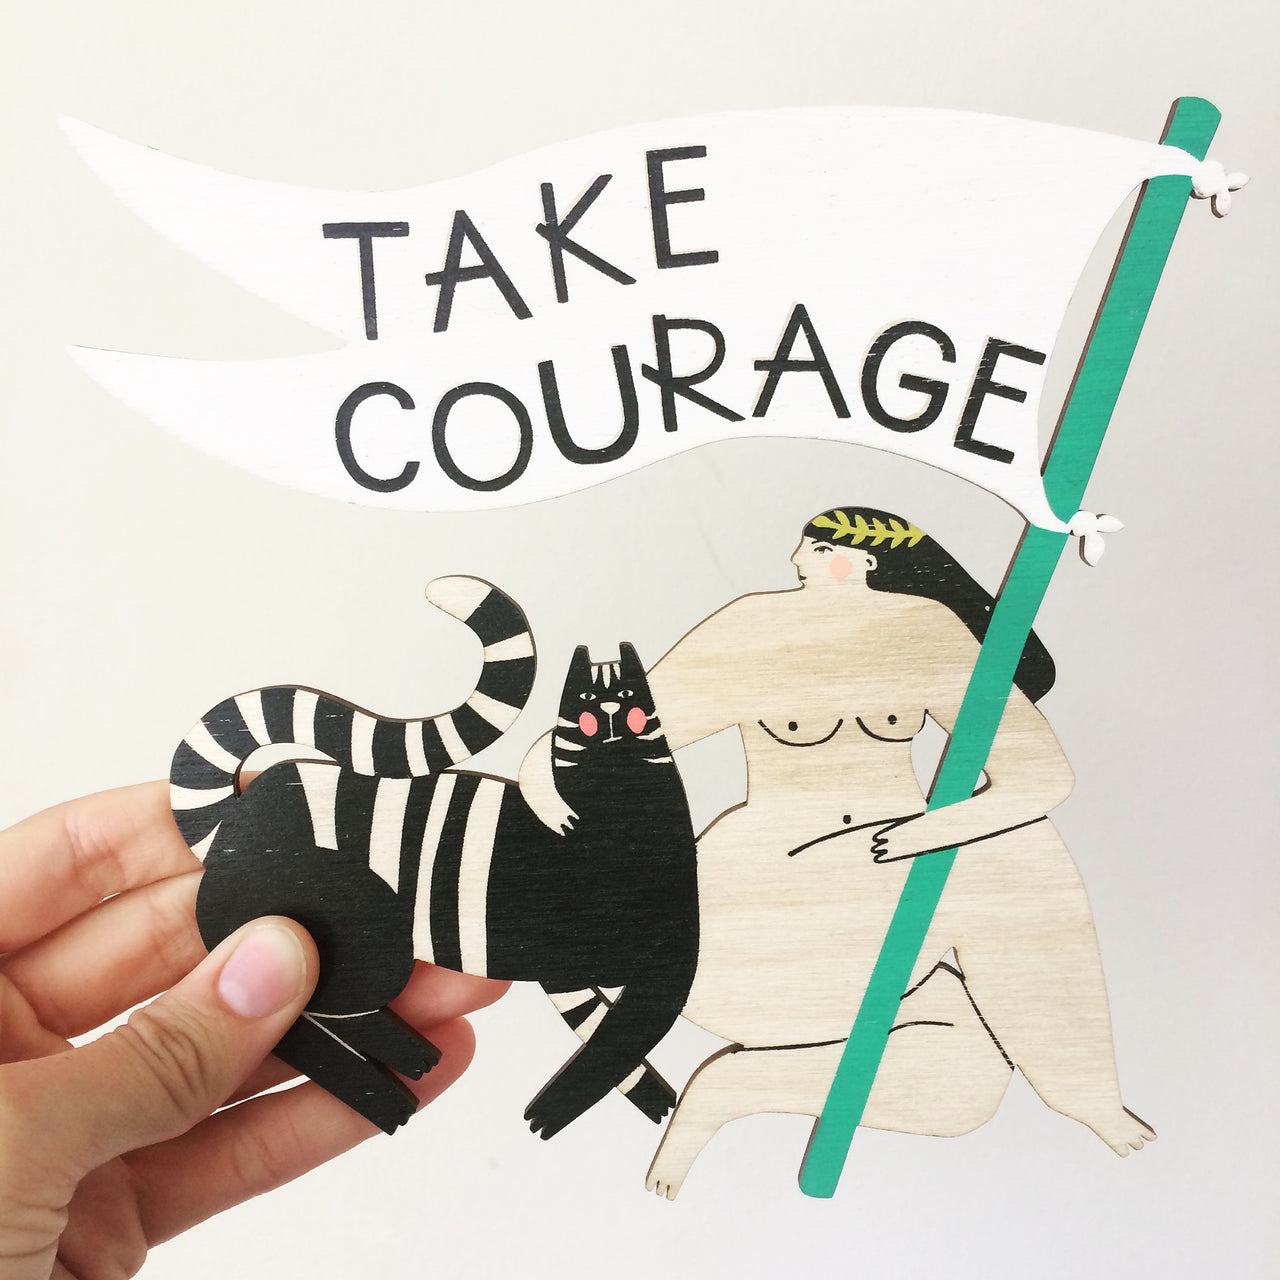 Laser cut and screen printed 'Take Courage Motivational Lady' by Fiona Biddington aka Paper Argonauts at Soma Gallery